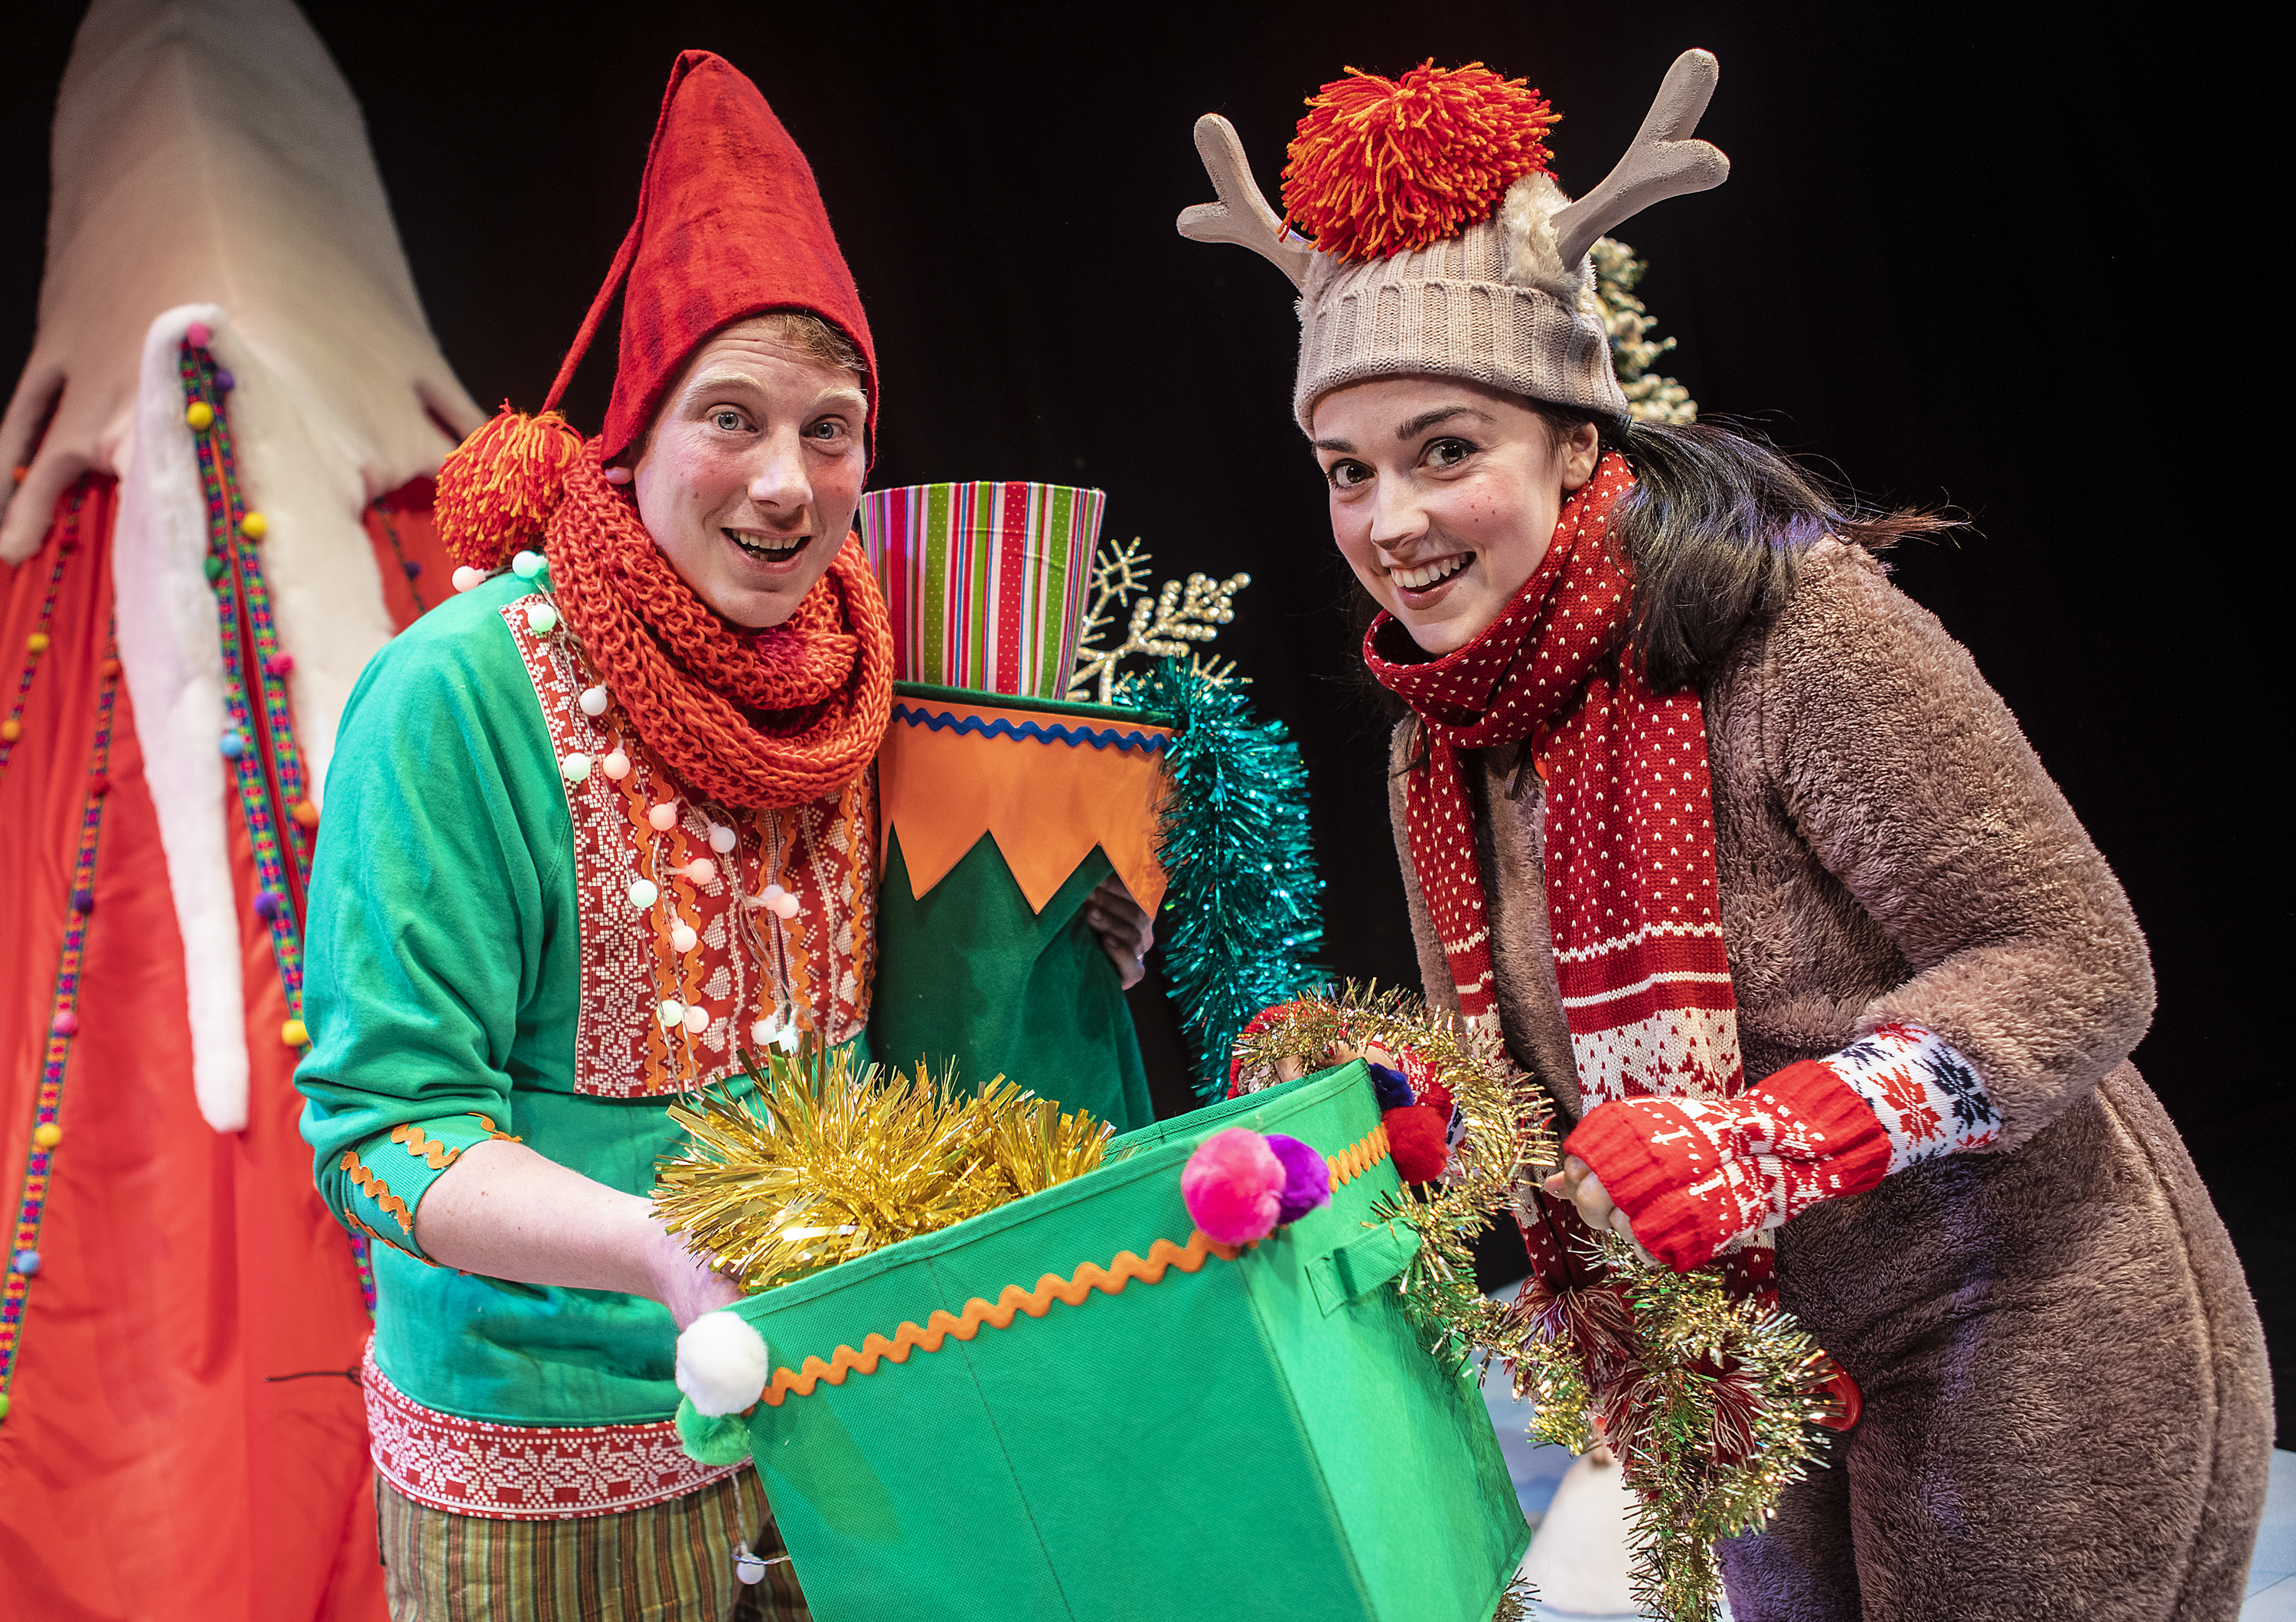 004_Elf and Reindeer's Christmas Cracker_Pamela Raith Photography